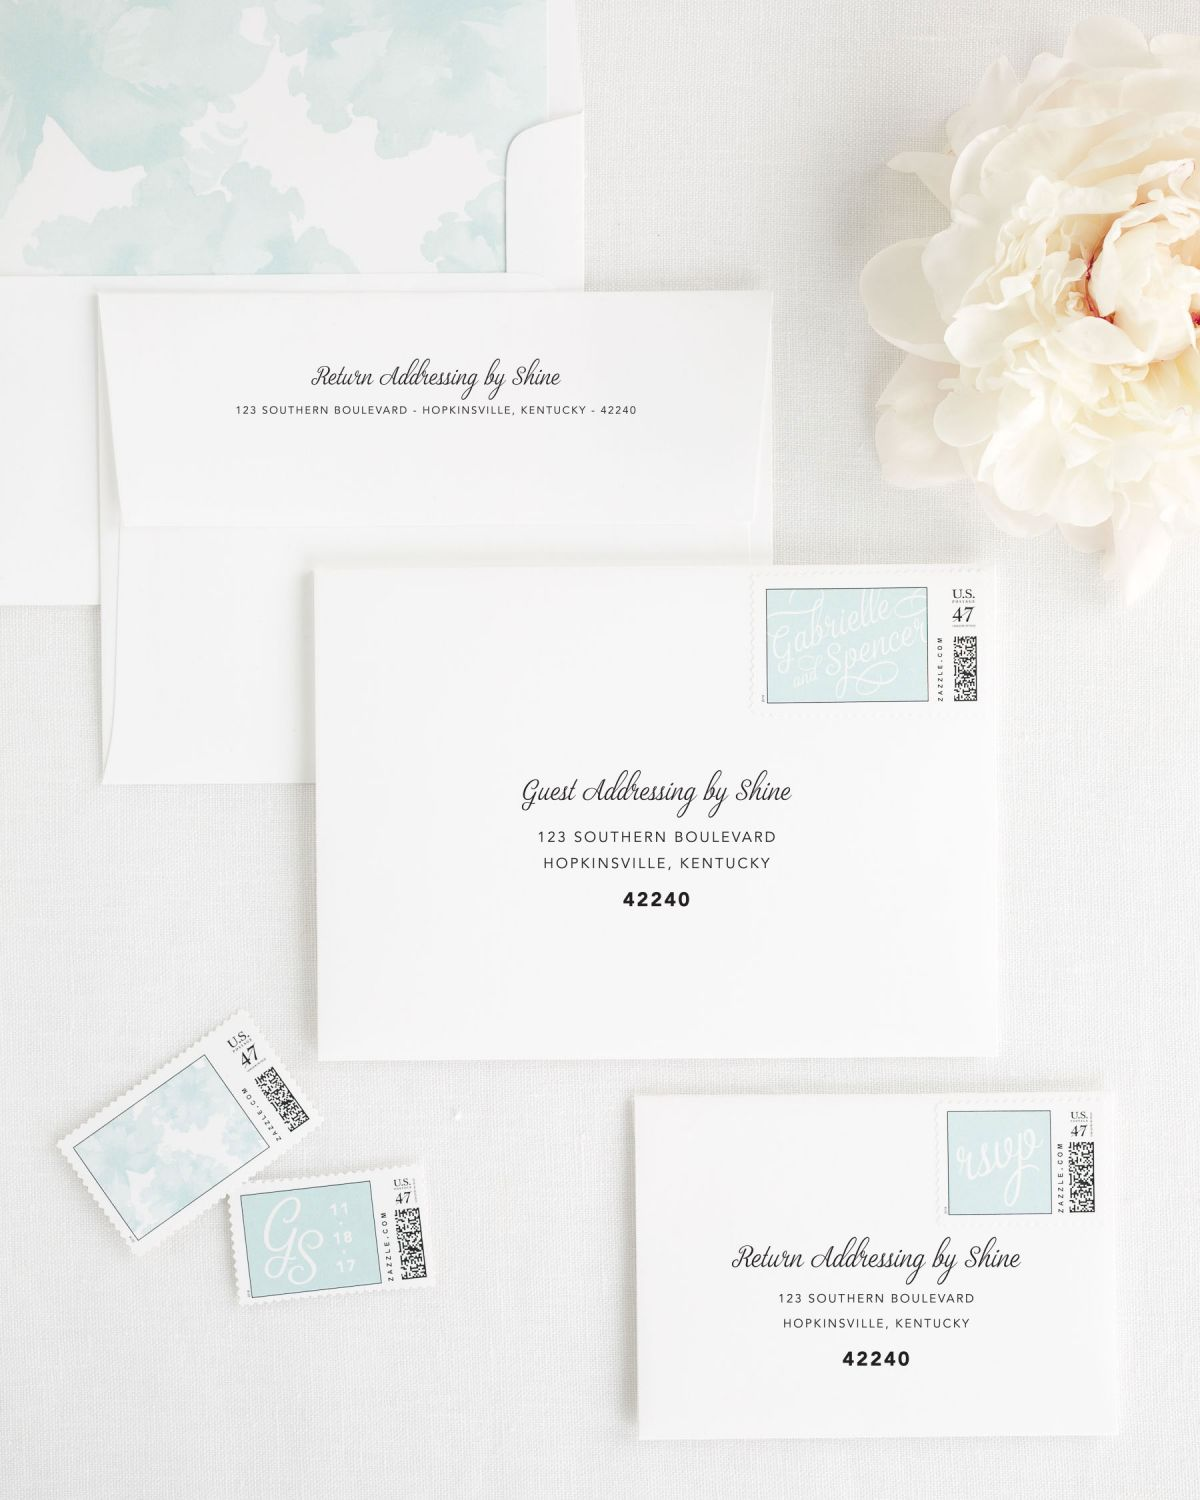 Wedding Invitation Envelopes with Mint Blue Liner and Guest Addressing